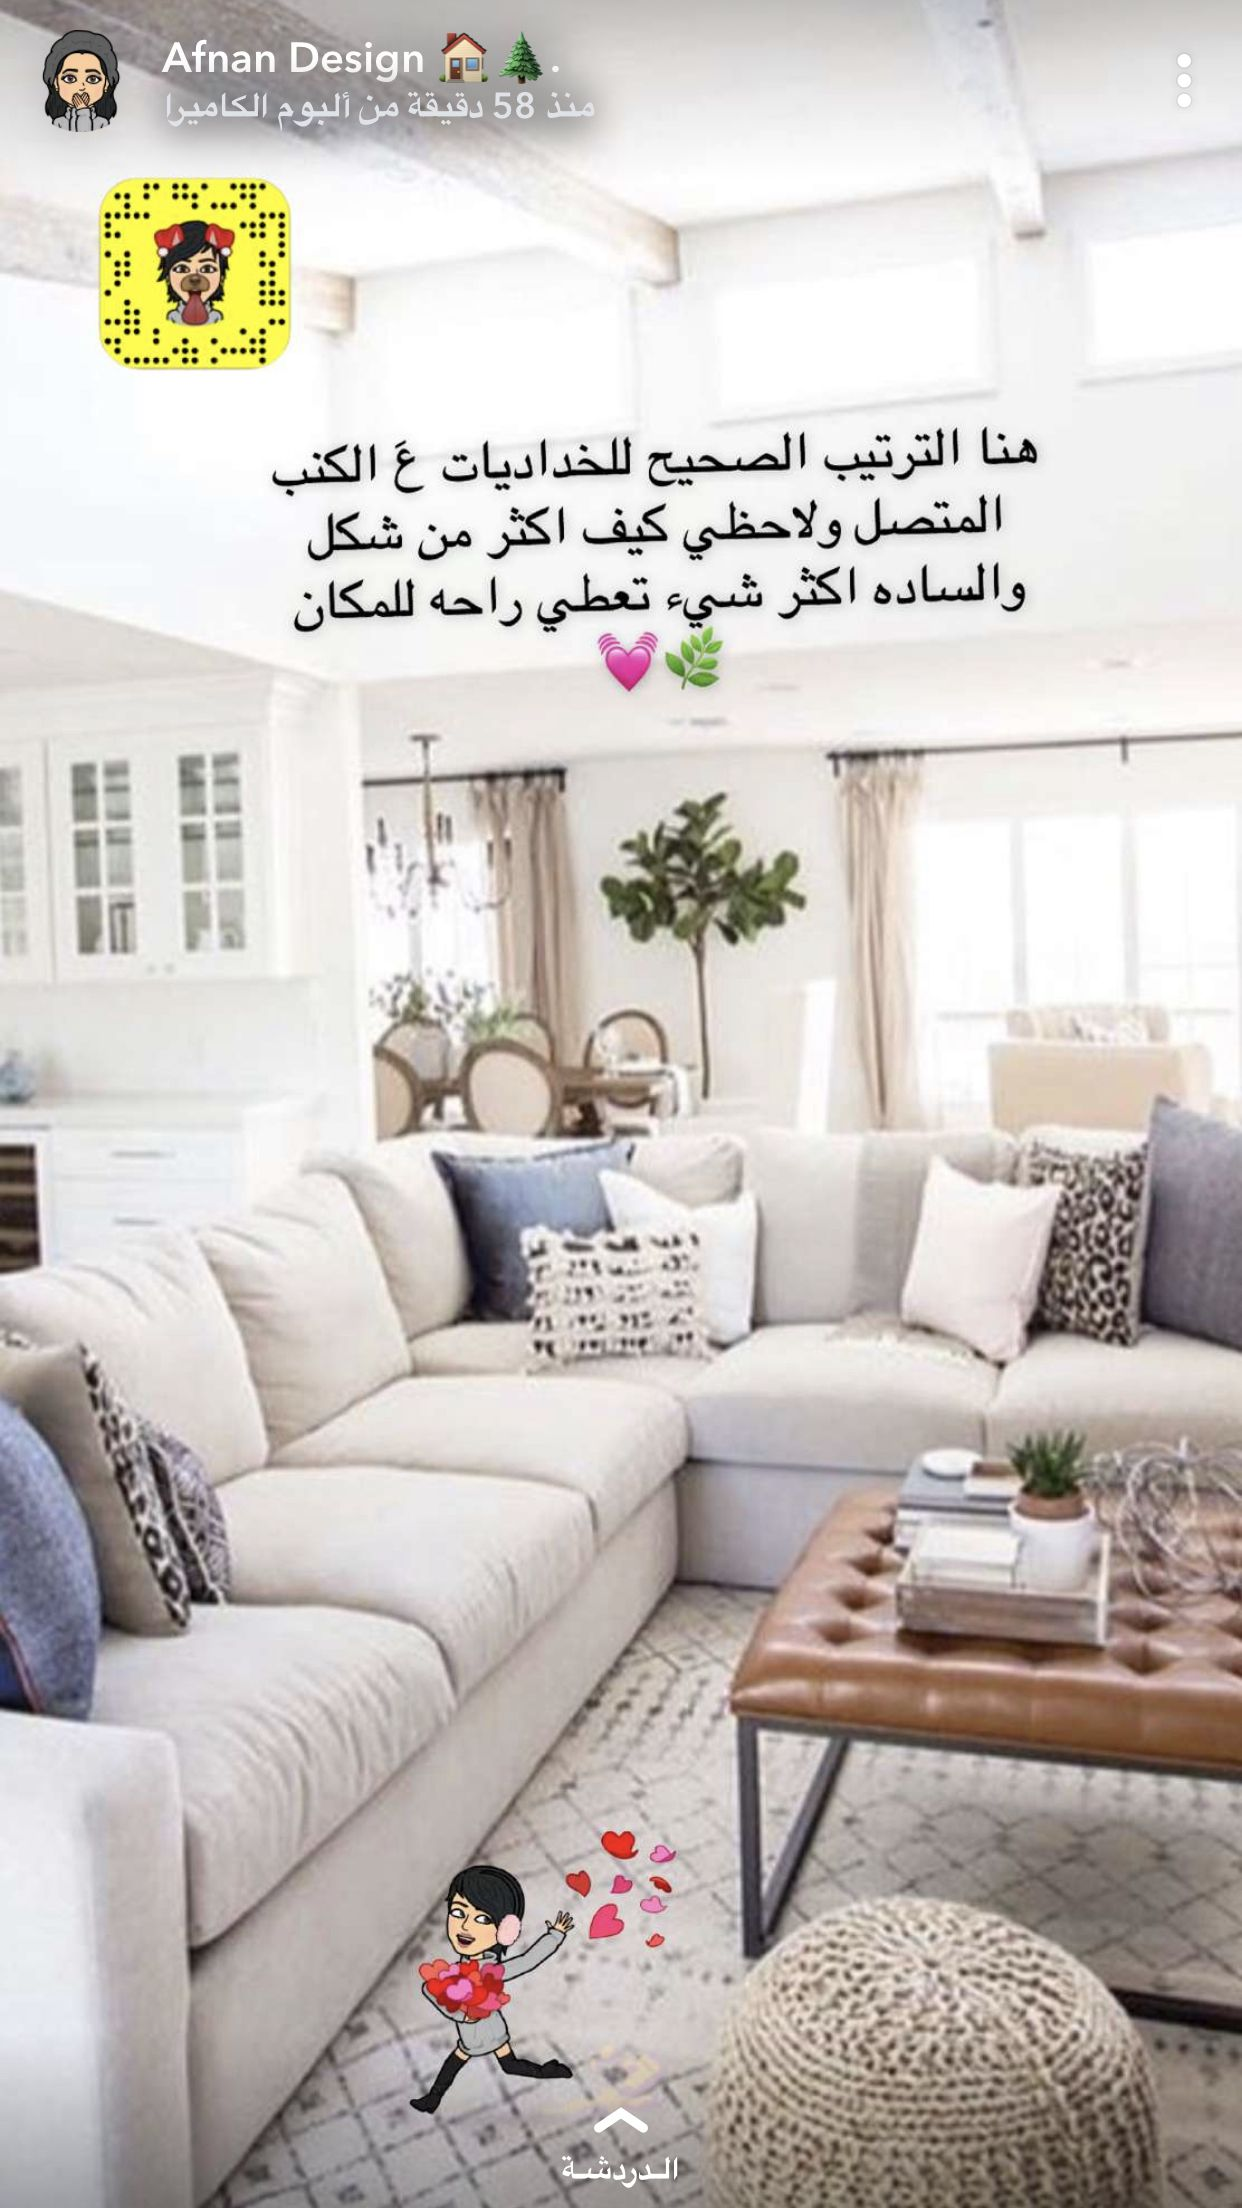 Pin By Jana Alhusaini On Decorating Home Room Design Home Design Living Room Elegant Home Decor